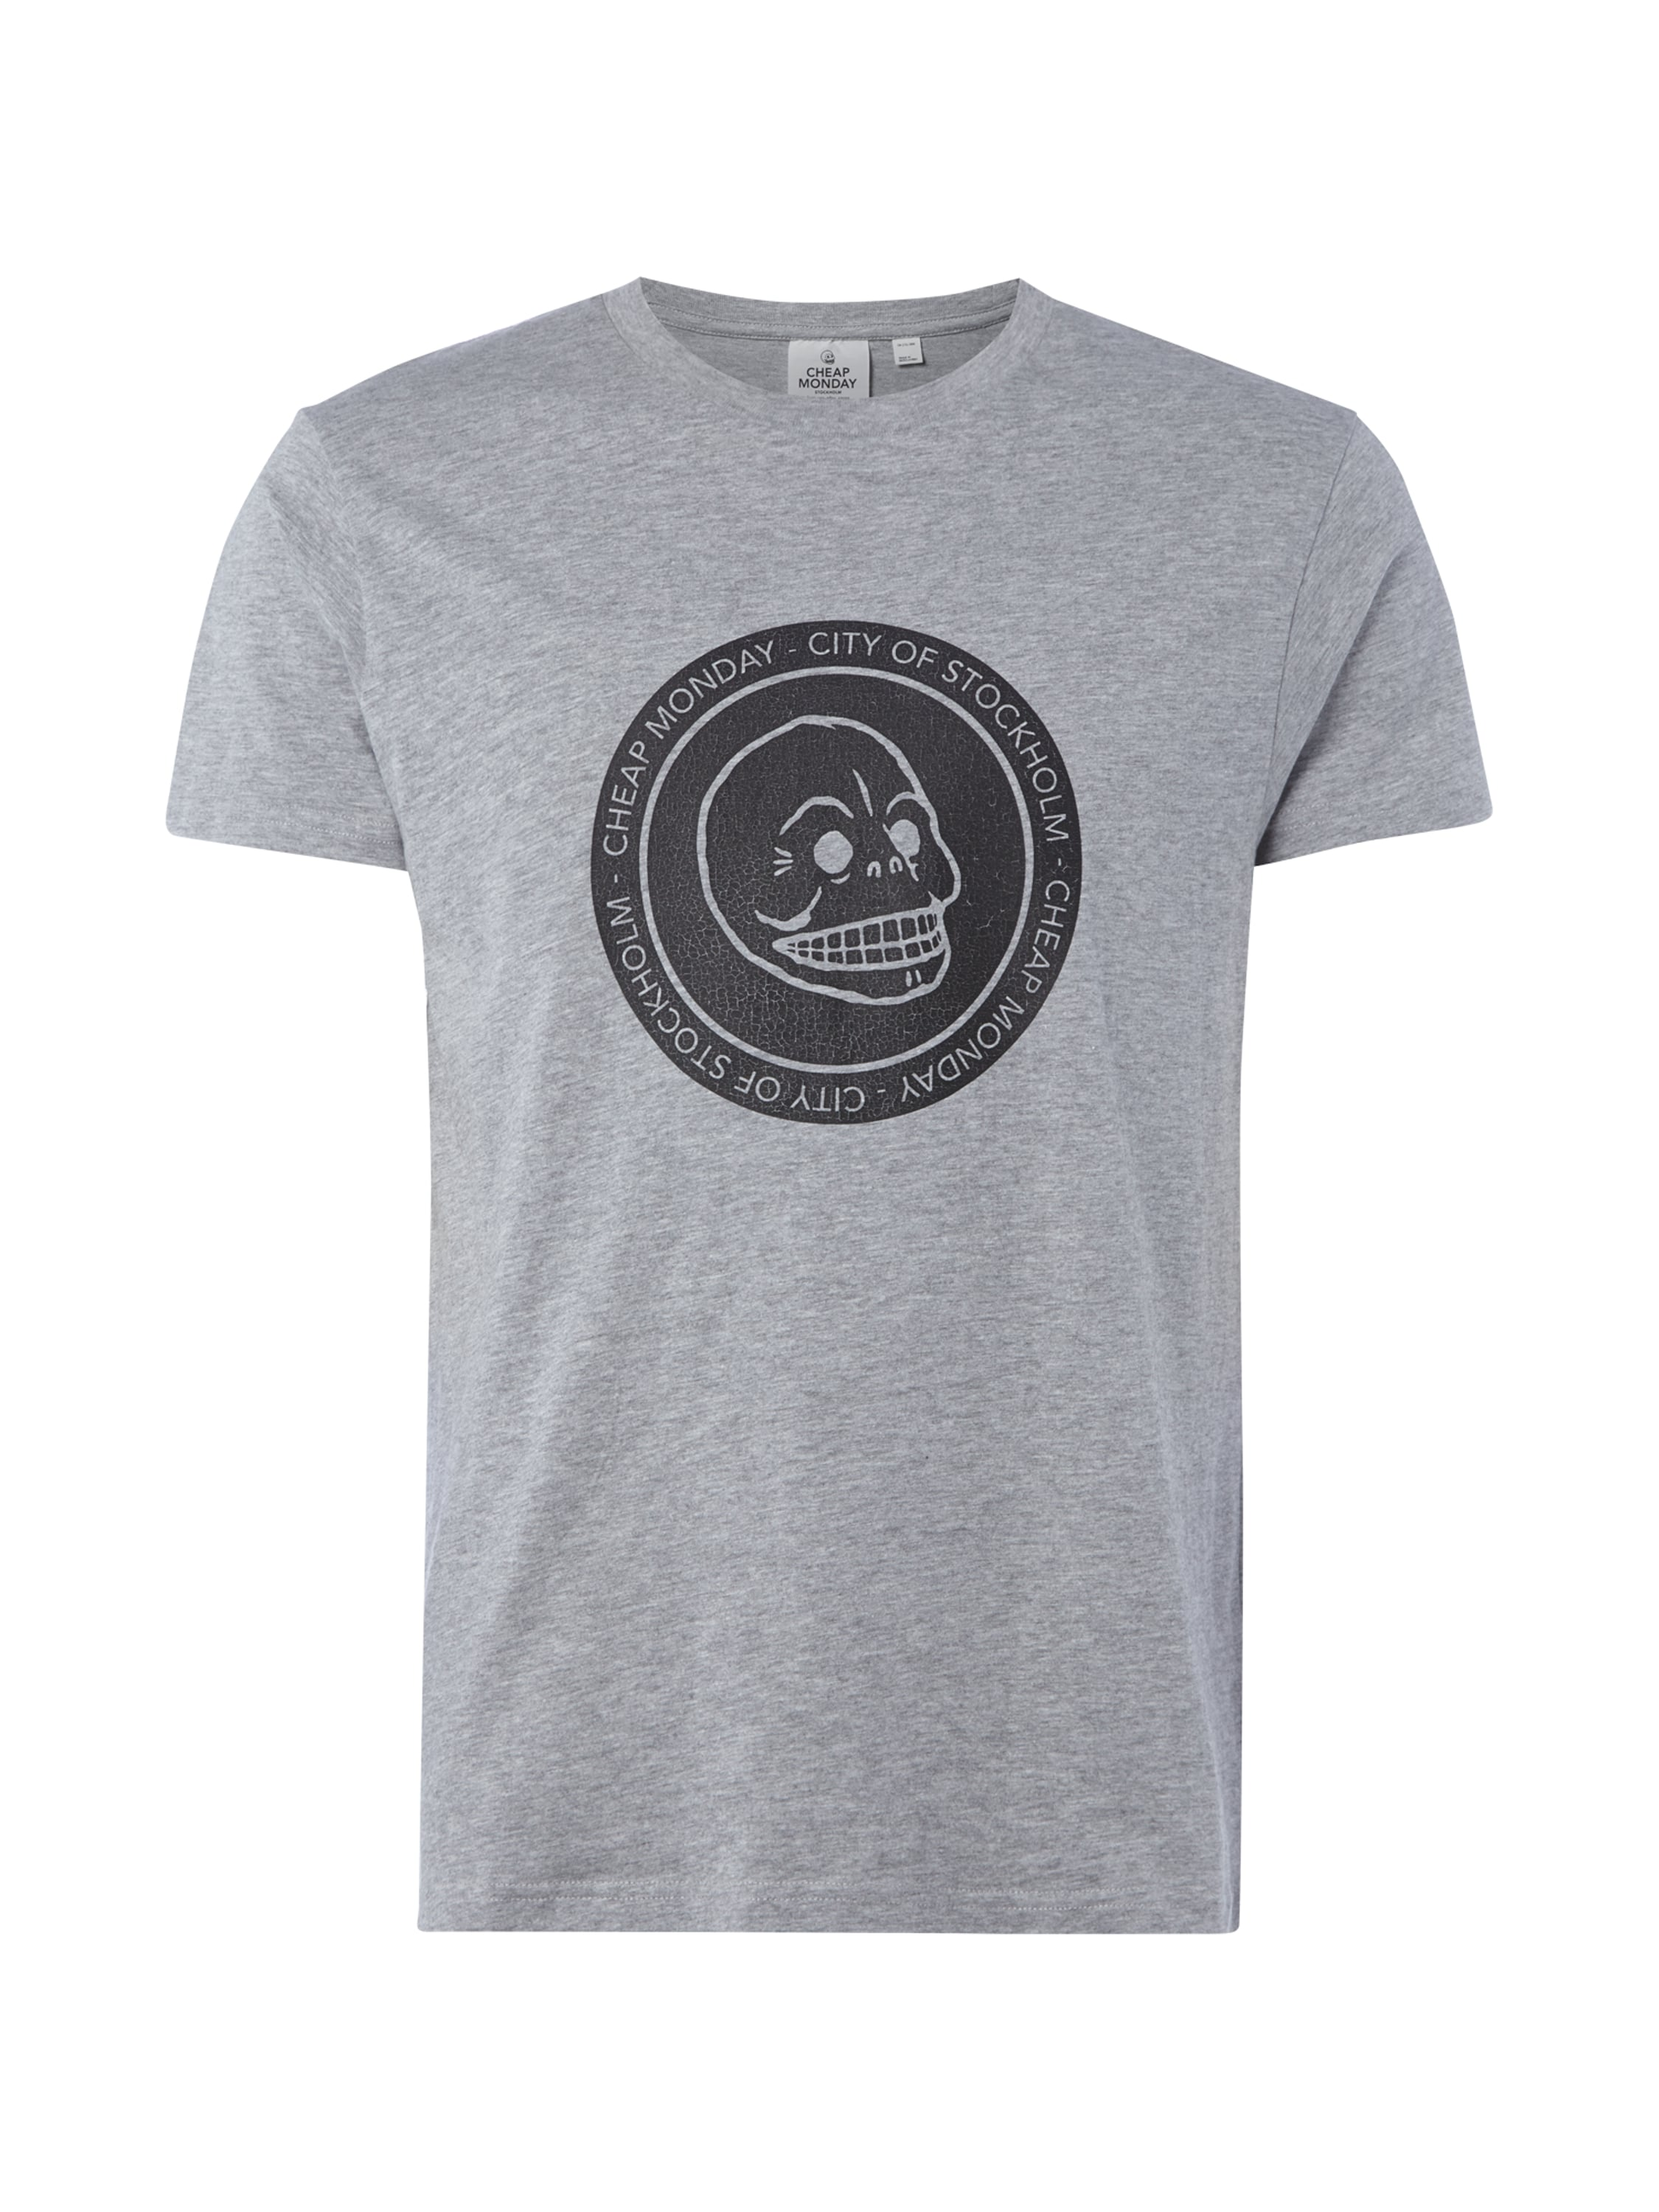 Cheap monday t shirt mit logo print im vintage look in for Cheap print t shirts